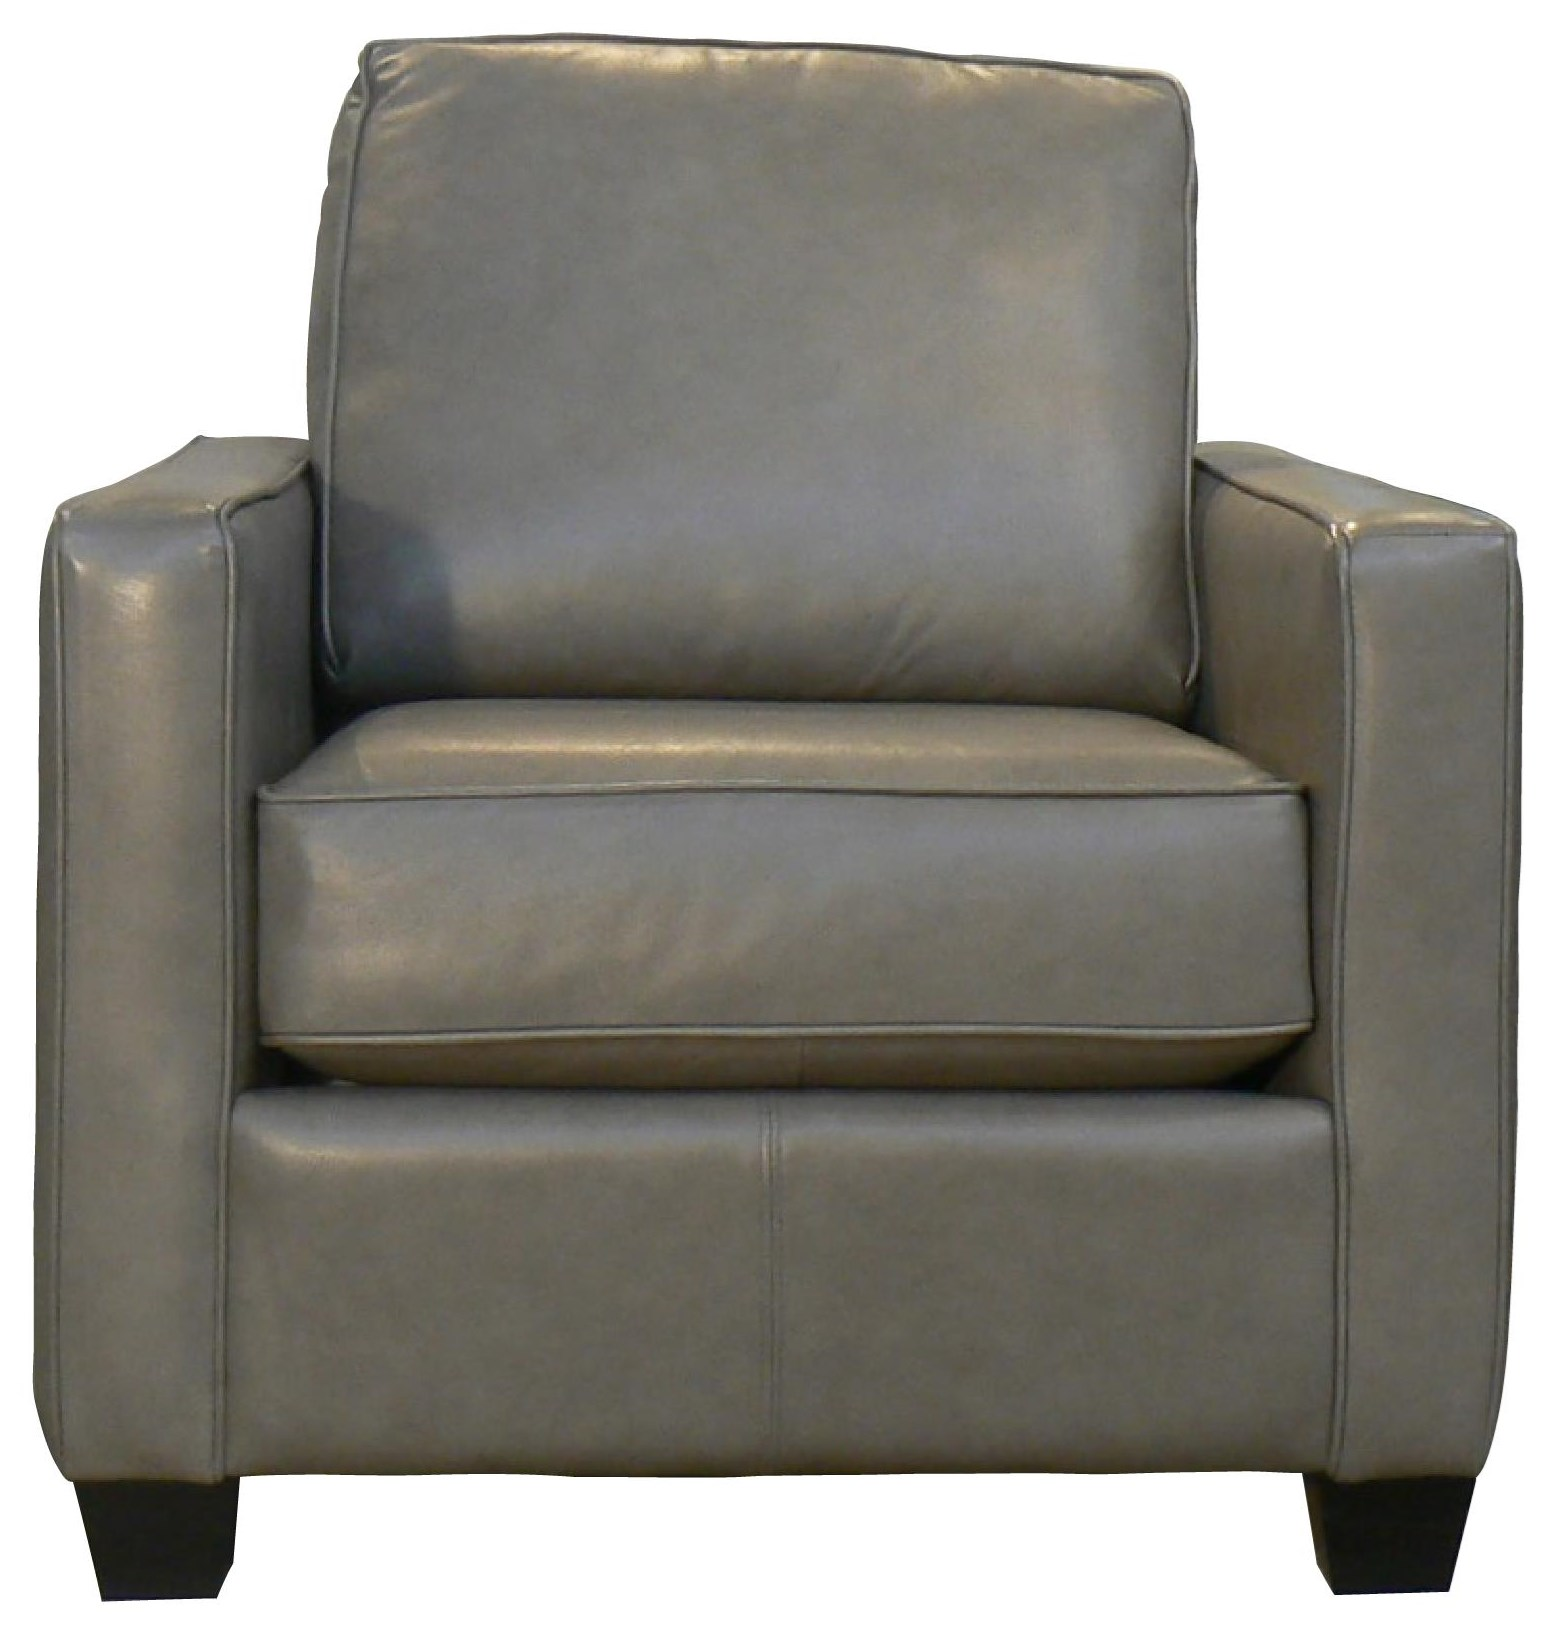 Lara Leather Chair by Taelor Designs at Bennett's Furniture and Mattresses